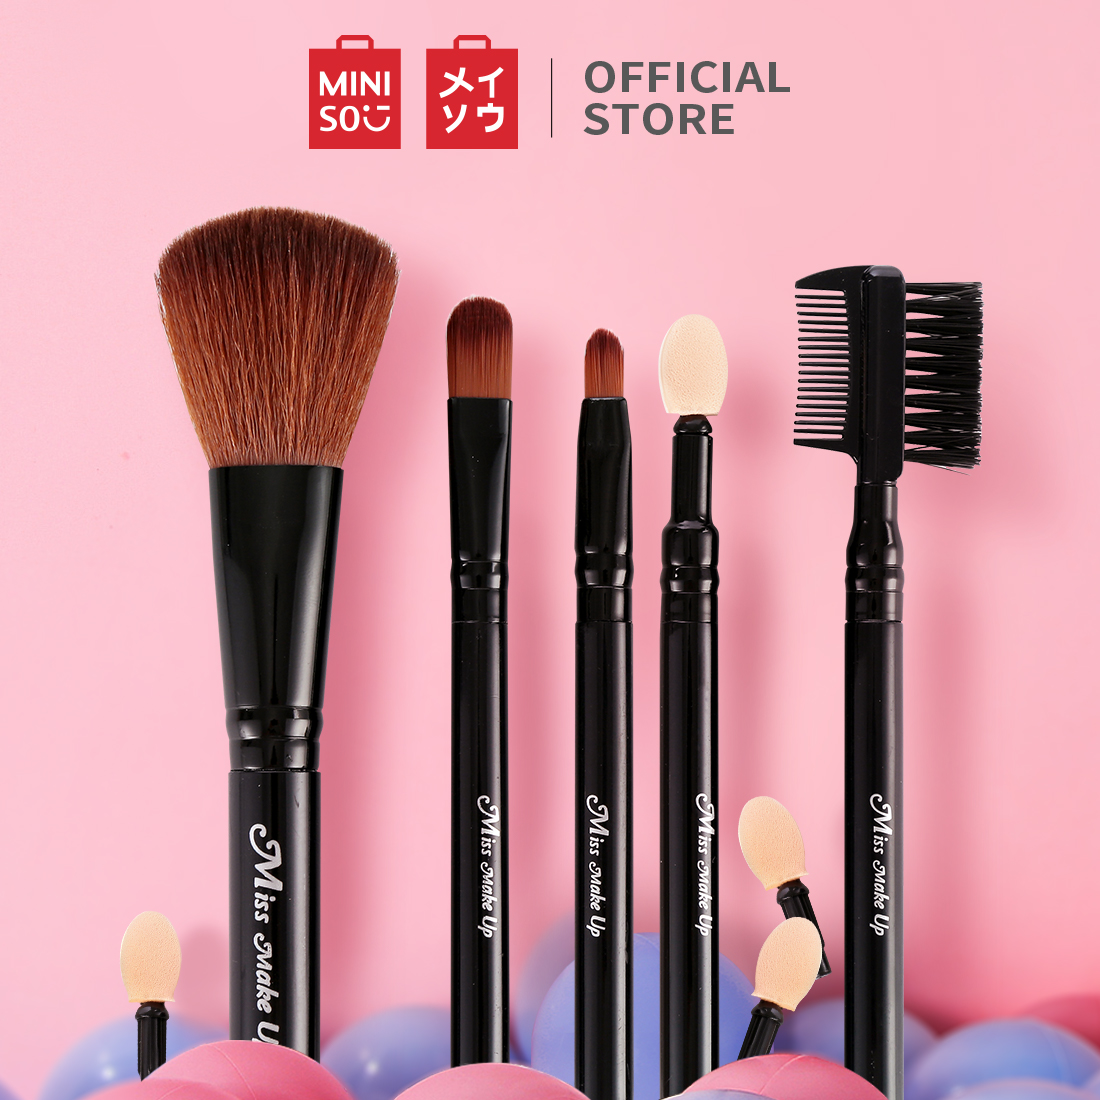 Miniso Official Skin charm makeup brush 5piece setincl (07MN-9610) - Hitam thumbnail